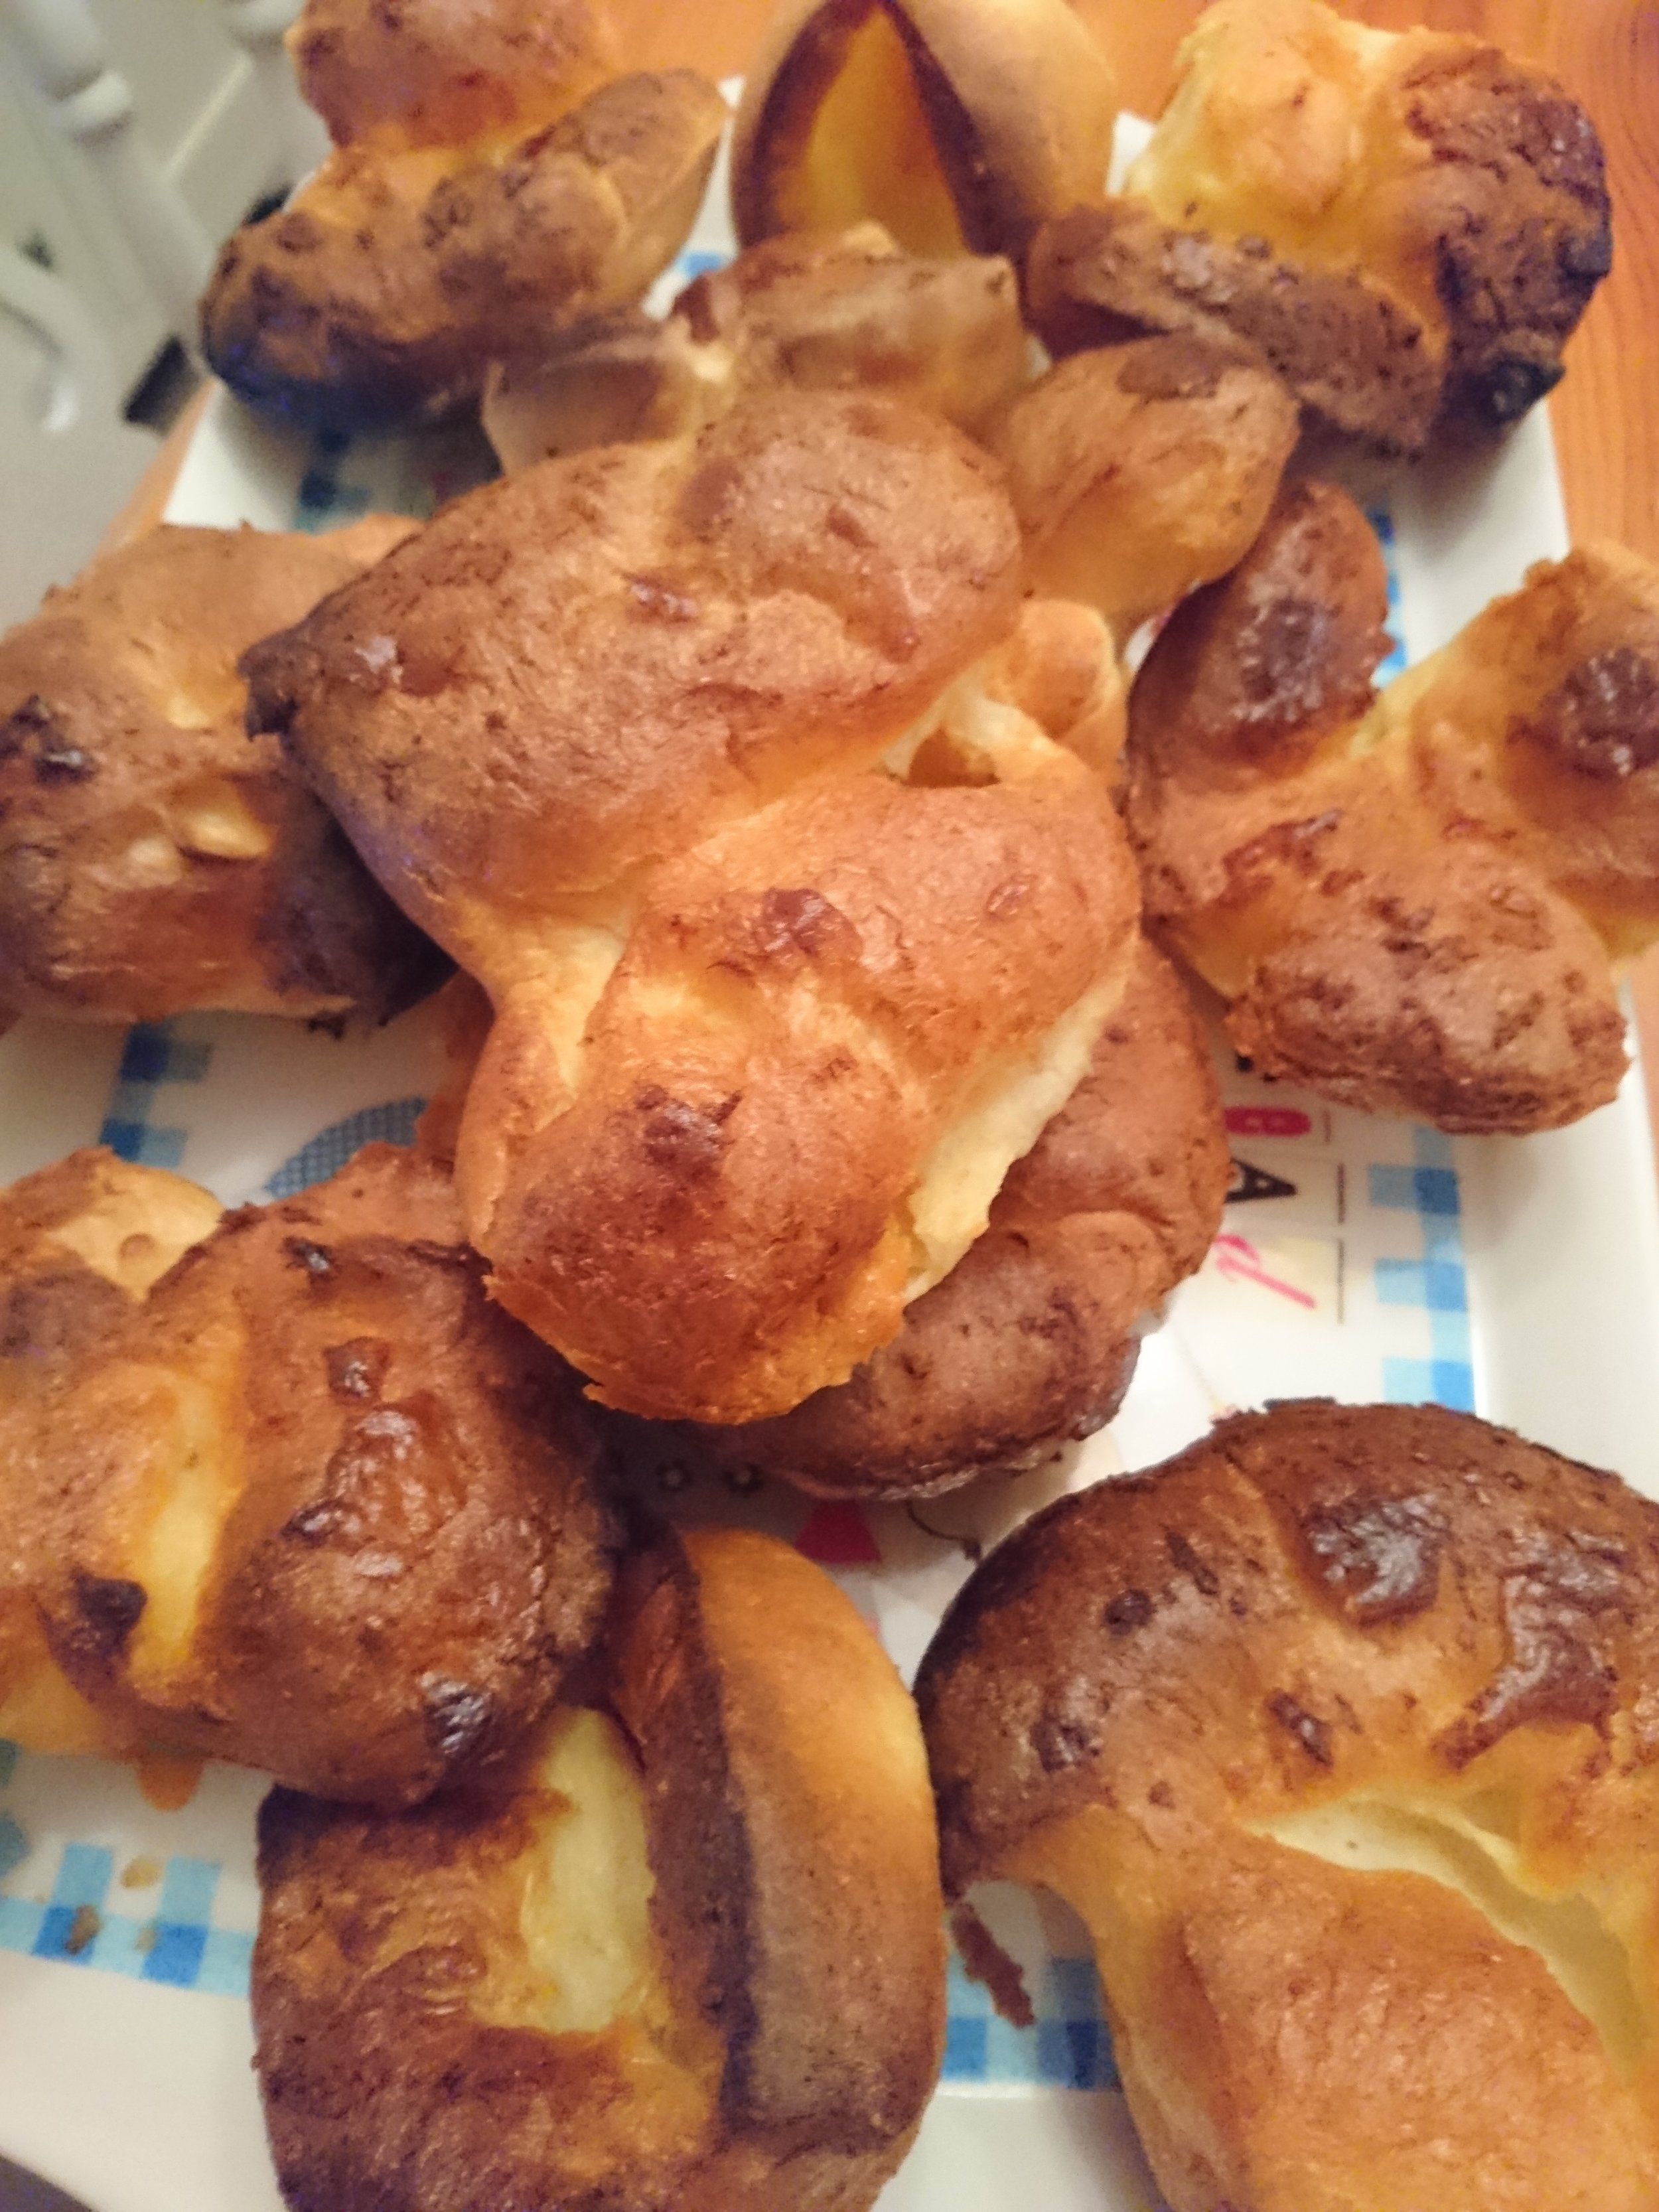 Yorkshires in Yorkshire (maybe?)